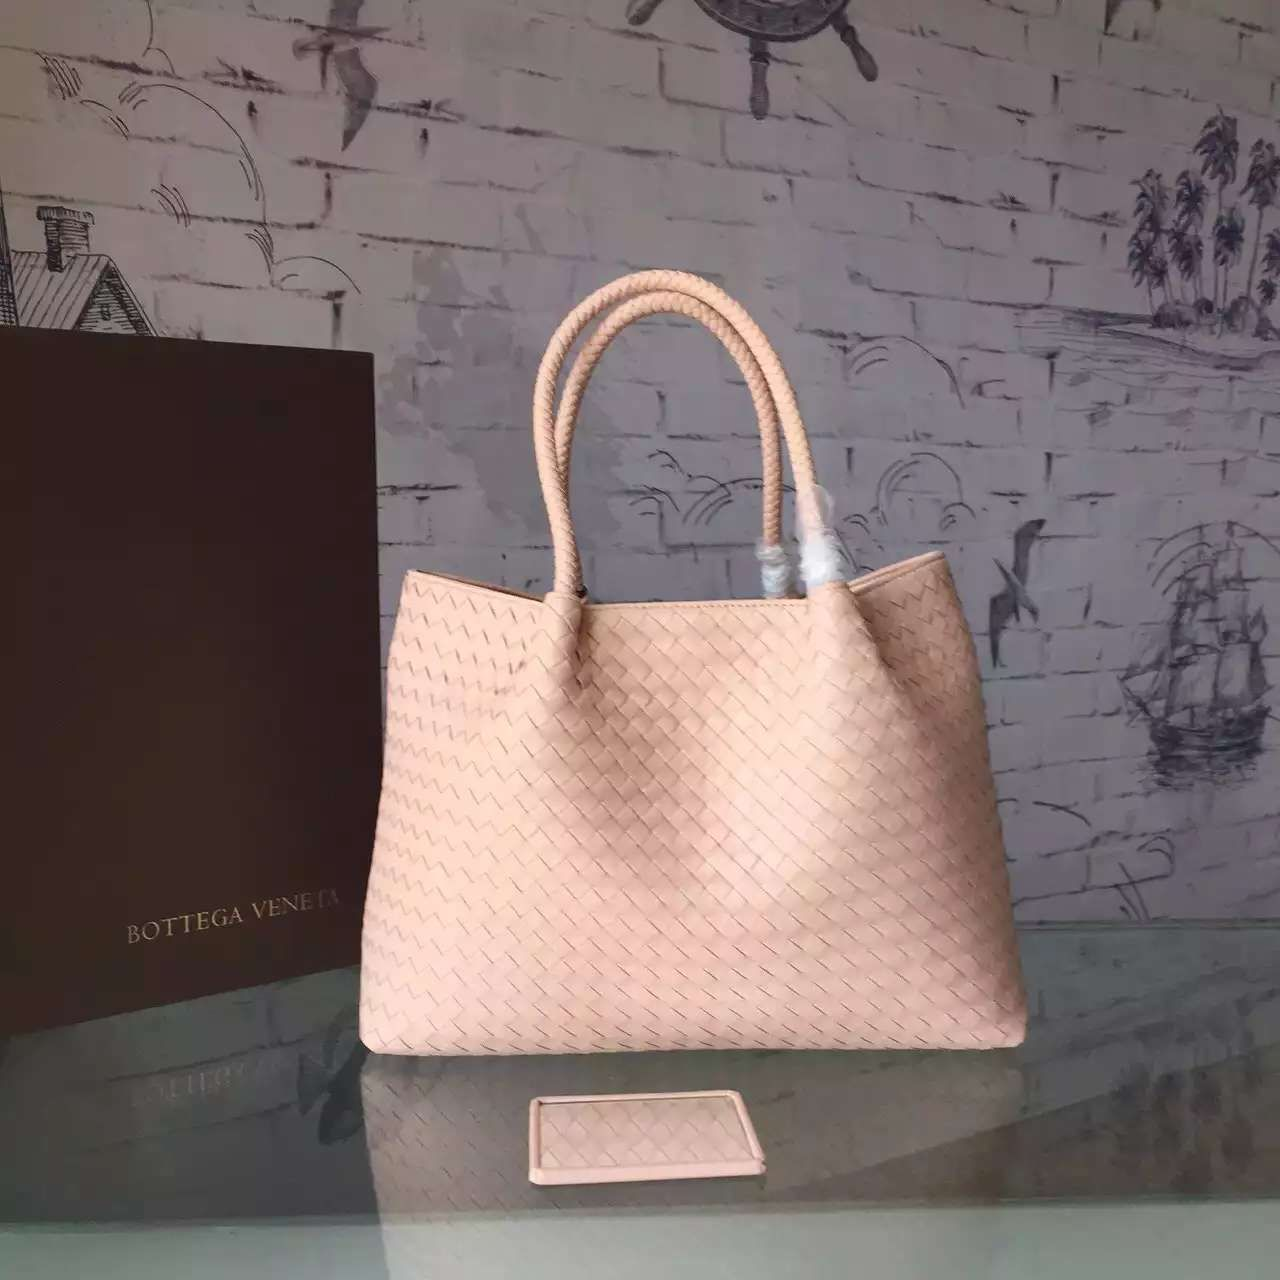 bottega veneta Bag, ID : 46136(FORSALE:a@yybags.com), bottaga veneta, bottega veneta cheap briefcase, bottega veneta children's backpacks, bottega veneta rolling laptop backpack, bottega veneta wheeled briefcase, bottega veneta italian leather bags, bottega veneta uk online, bottega veneta wallet purse, bottega veneta handbags 2016 #bottegavenetaBag #bottegaveneta #botega #vineta